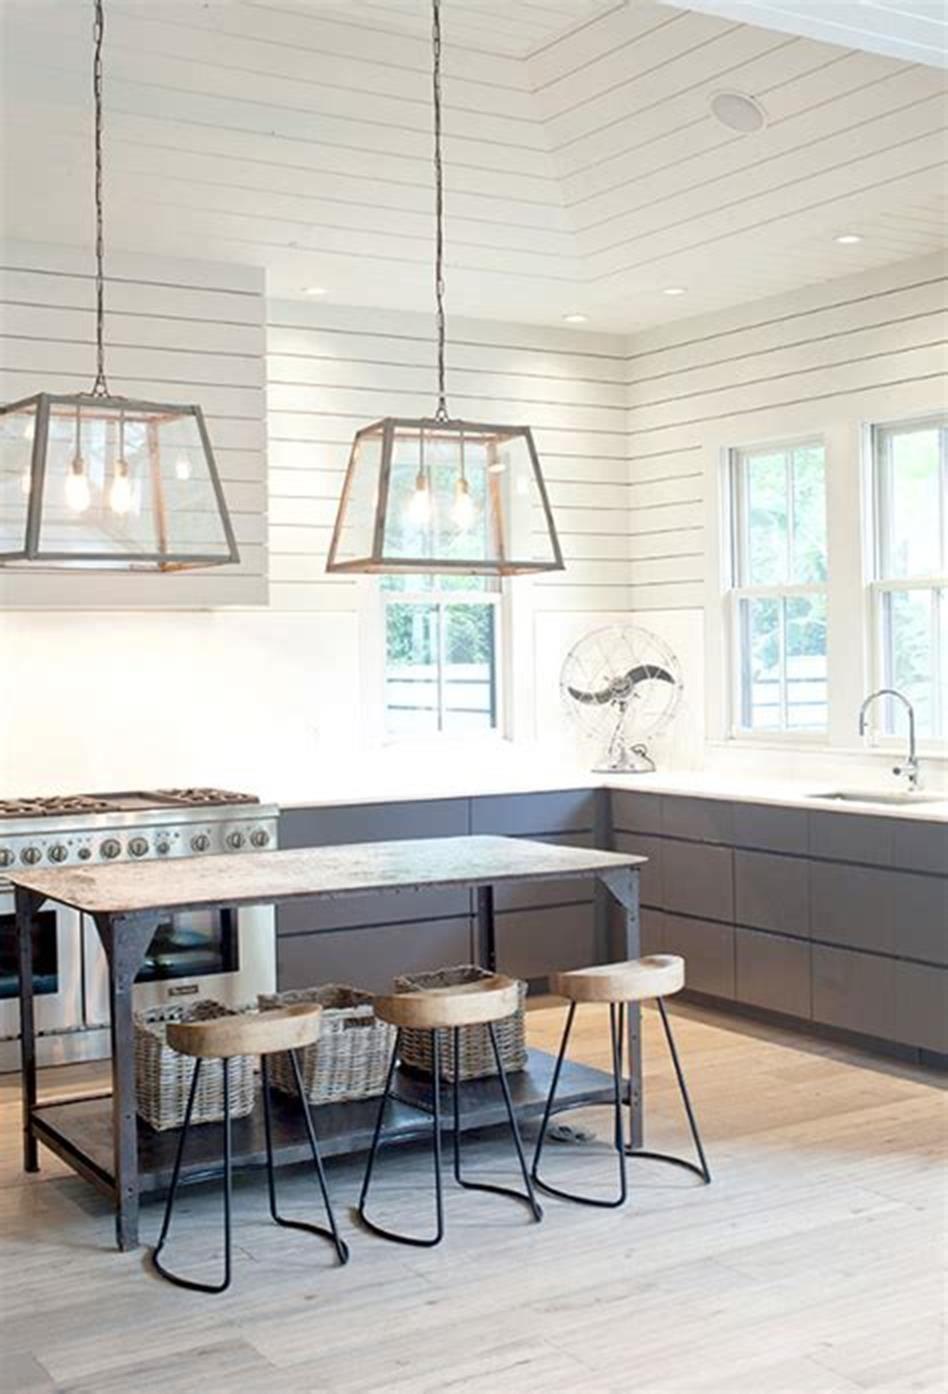 50 Inspiring Farmhouse Style Kitchen Lighting Fixtures Ideas 22